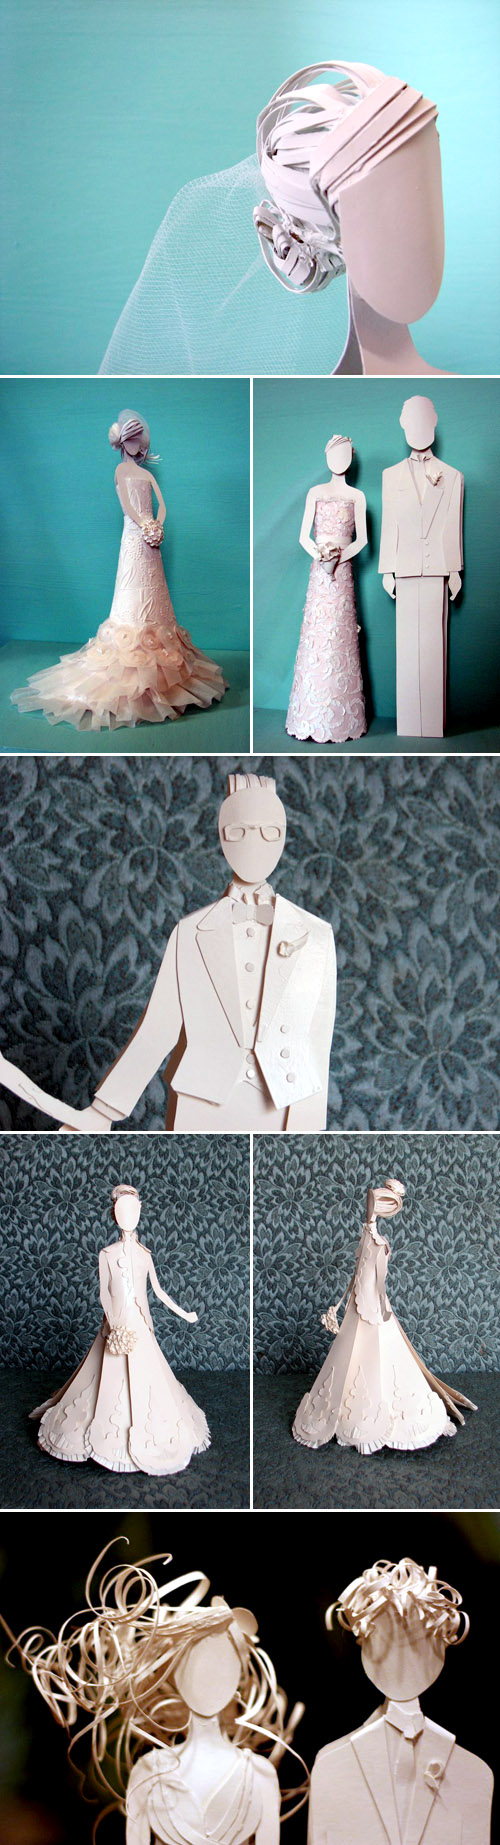 Custom Paper Wedding Gowns and Cake Toppers | Junebug Weddings